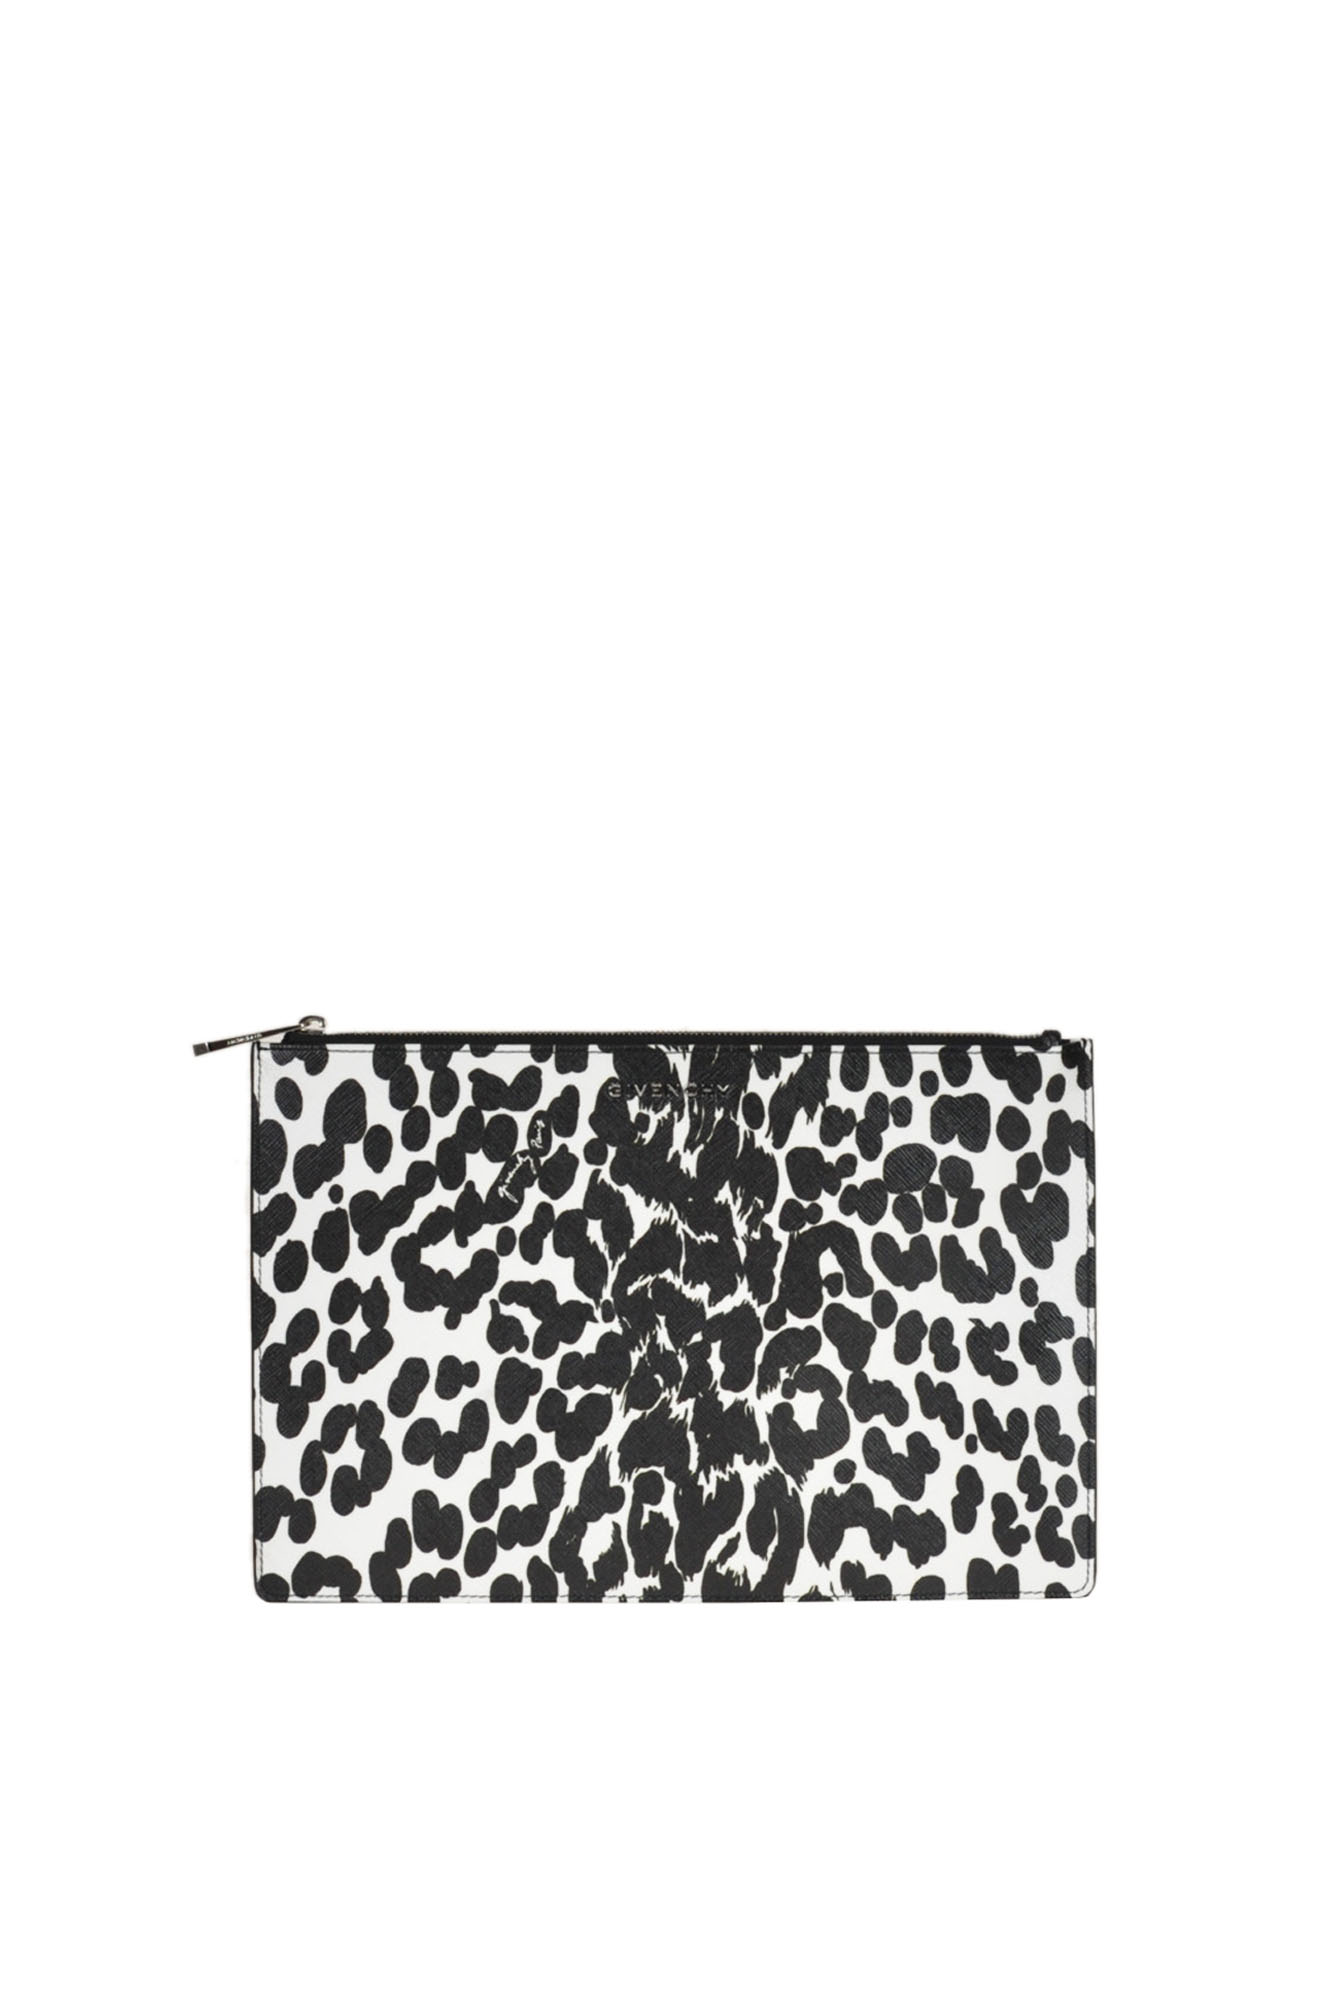 Givenchy 'Iconic Print' Pouch In White